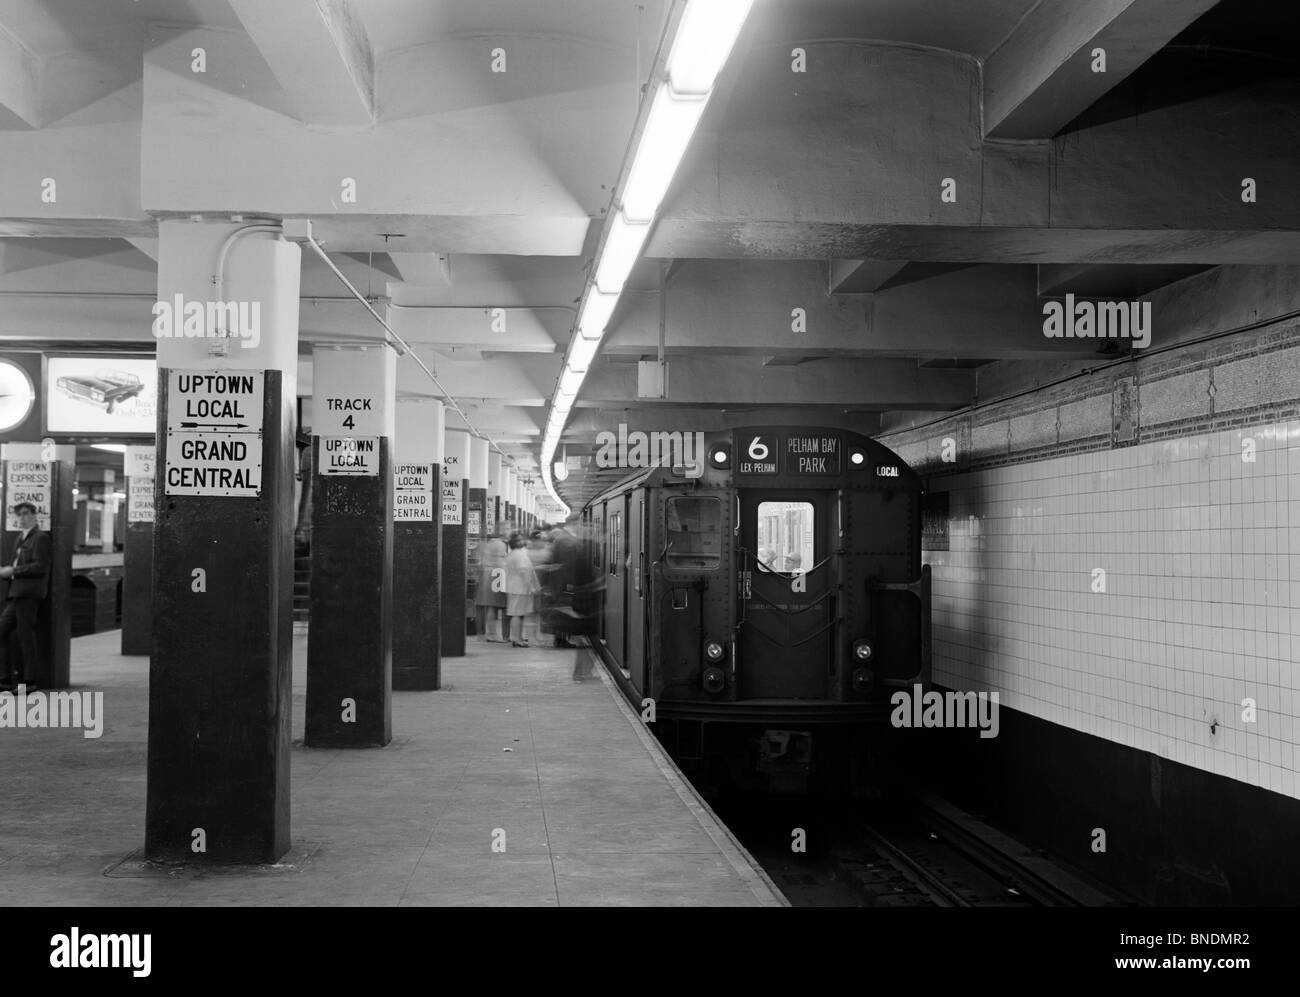 Passengers boarding a subway train - Stock Image